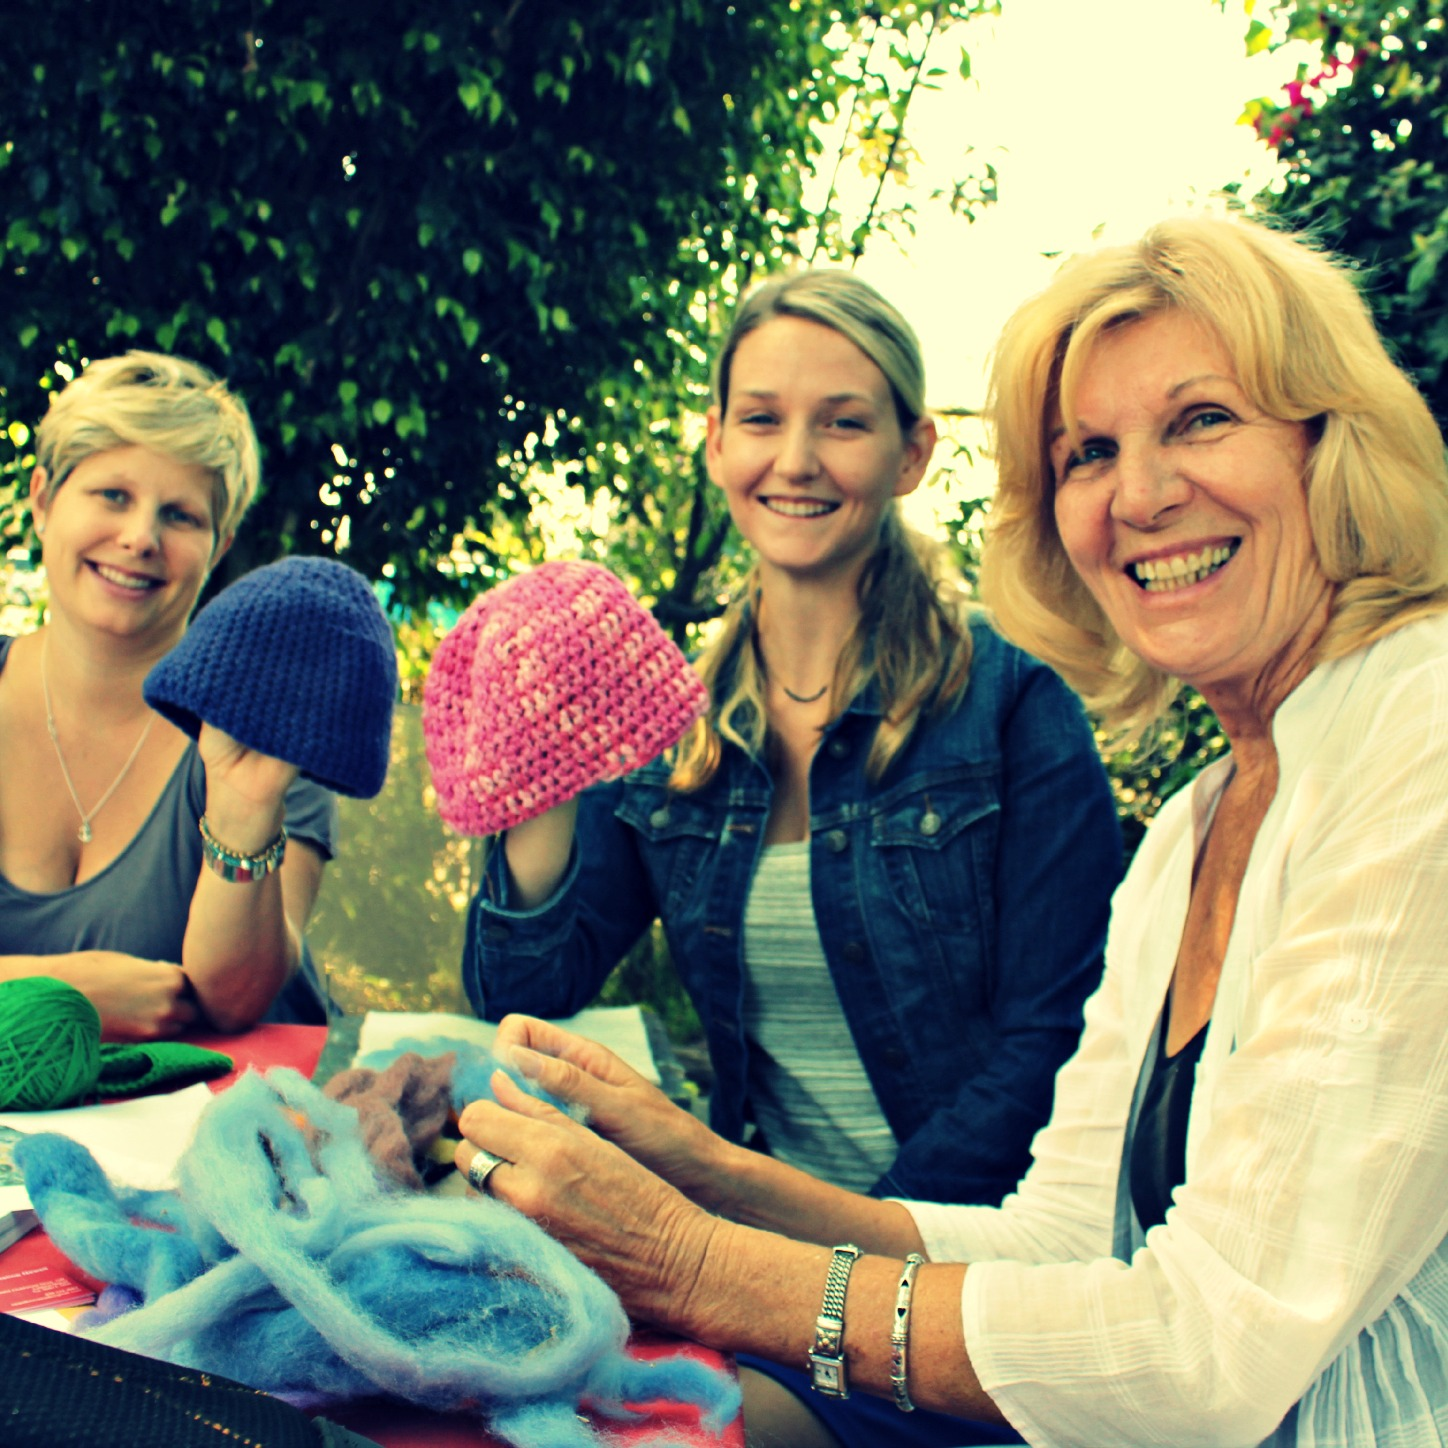 Kirsten, Kimmy, Christine. Crochet beanie hats. square. Wednesday Morning Craft Group. Waldorf School of Orange County. CastleofCostaMesa.Com